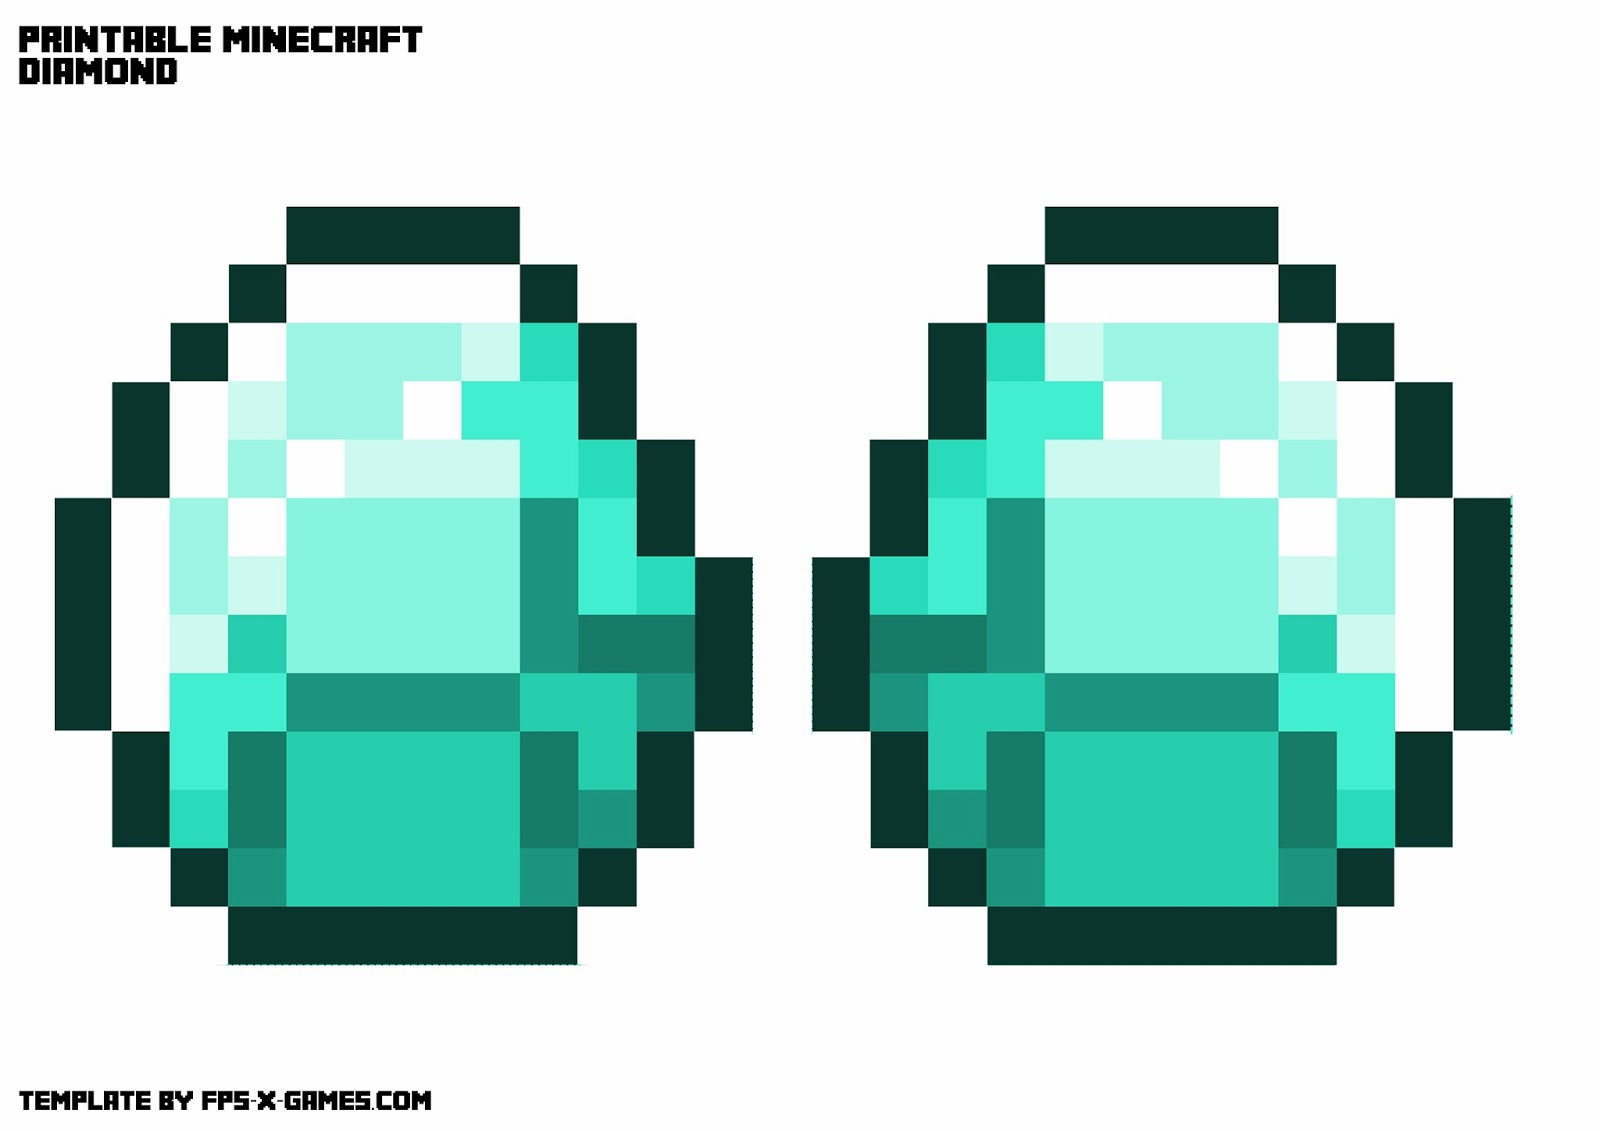 printable minecraft diamond necklace template. Black Bedroom Furniture Sets. Home Design Ideas